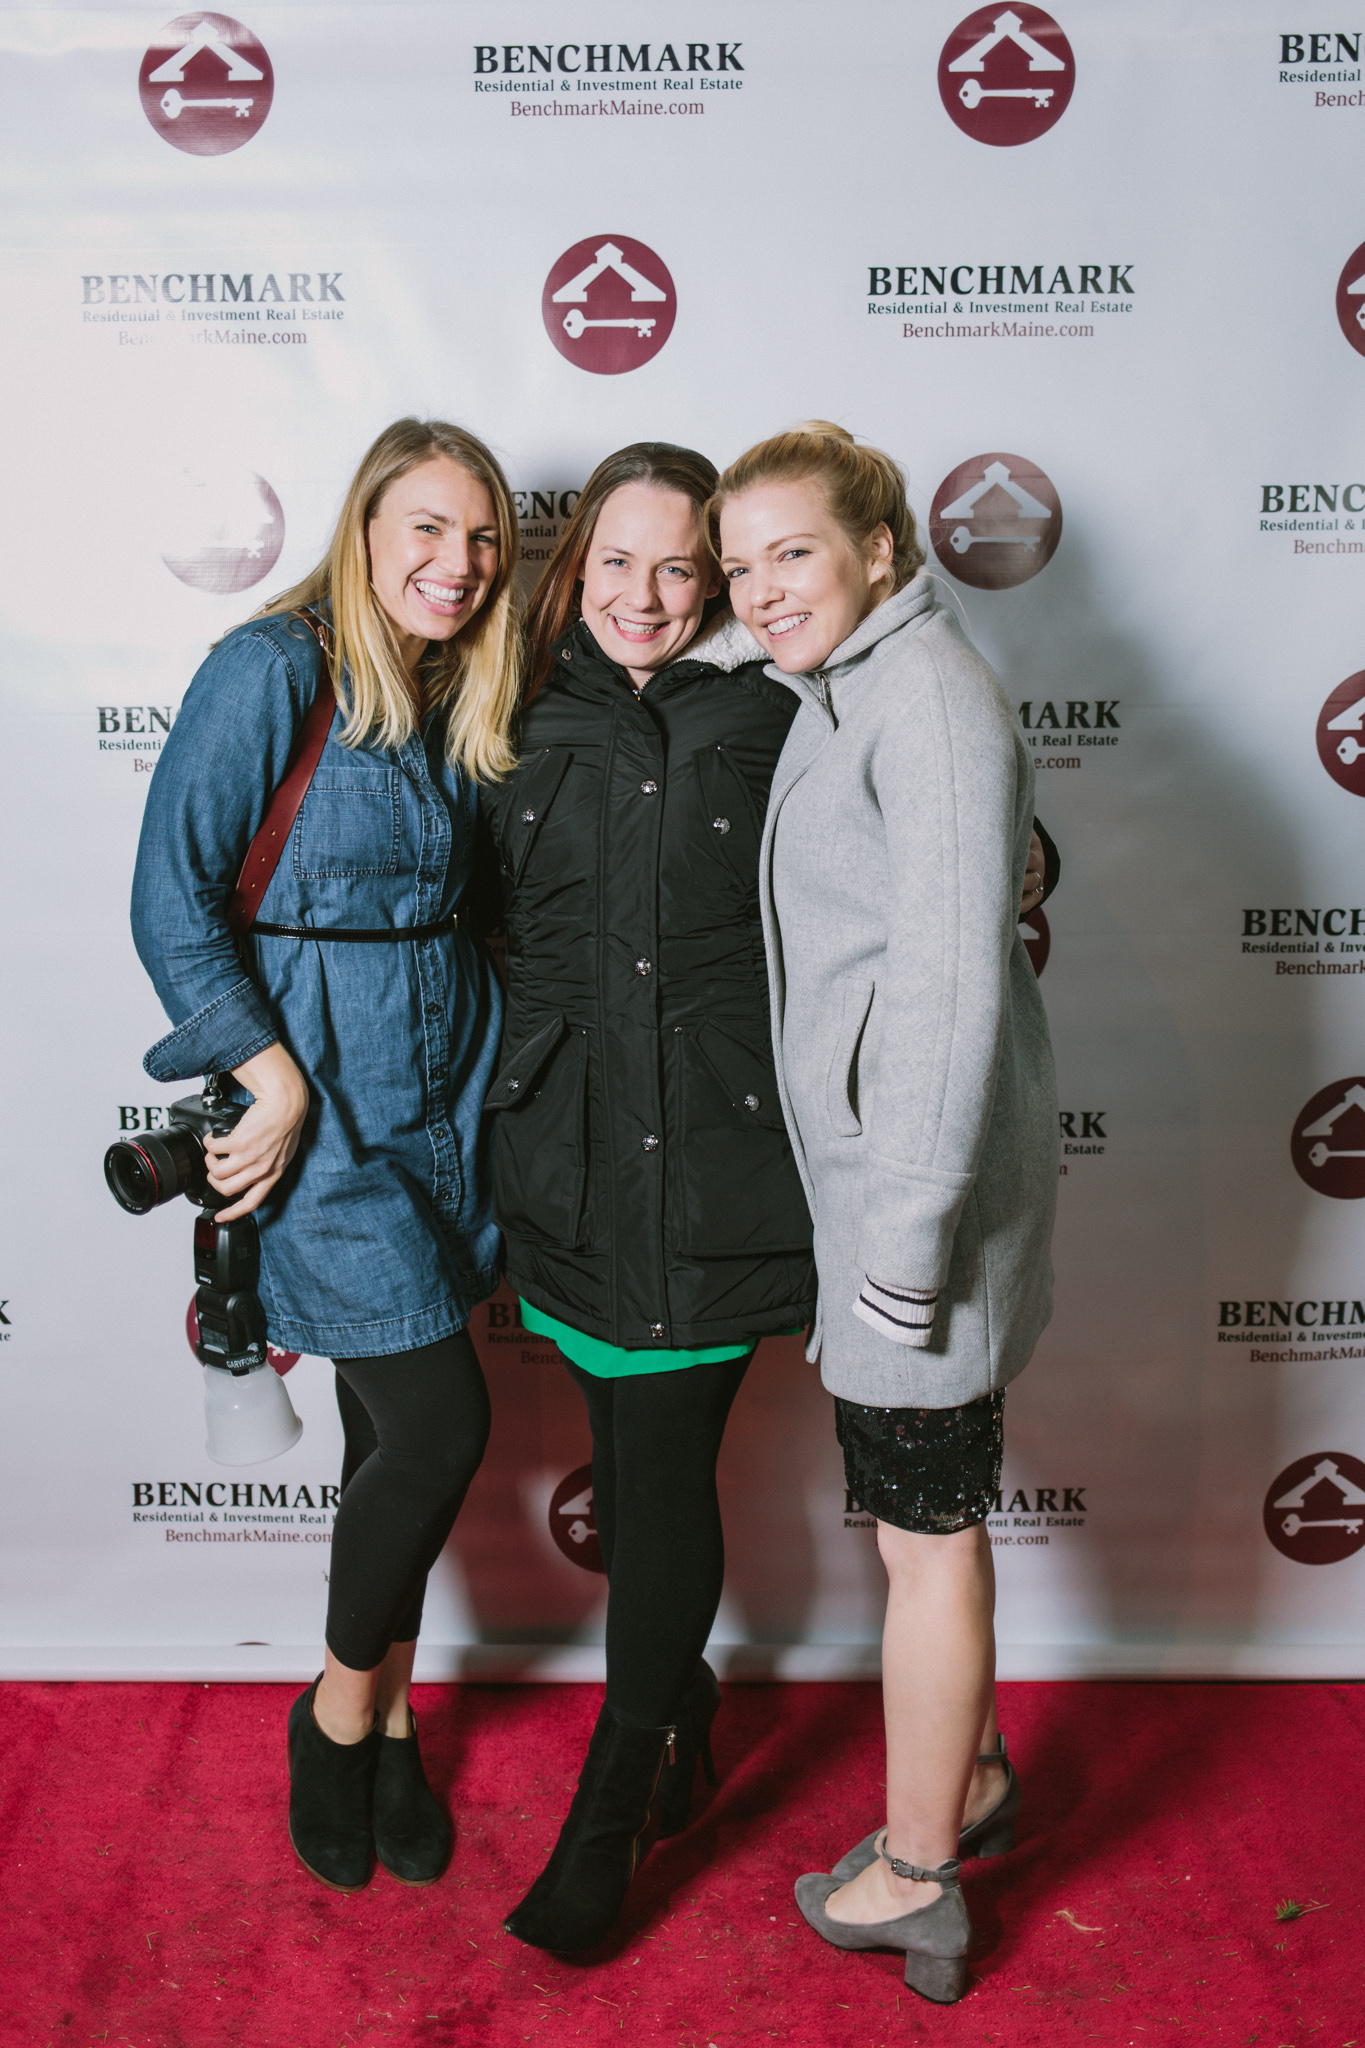 Benchmark_Holiday_Party_SR-084.jpg